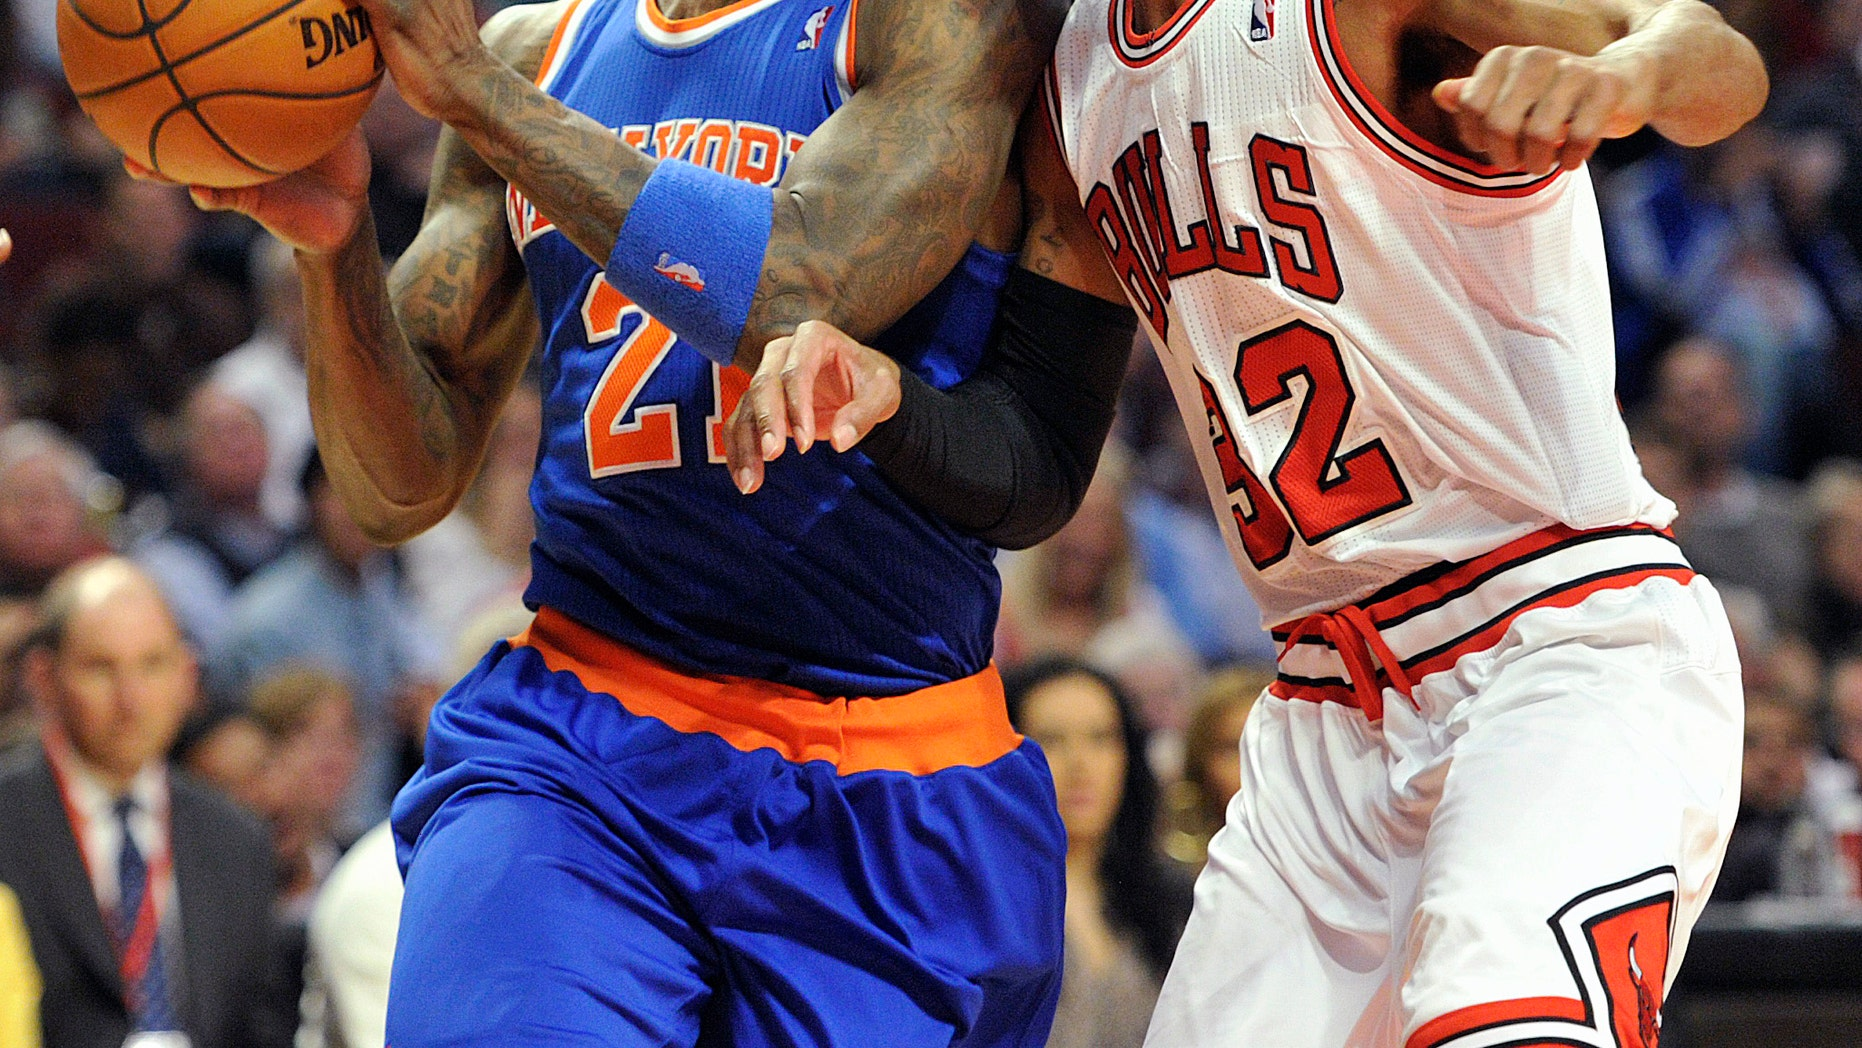 New York Knicks' Iman Shumpert drives to the basket as Chicago Bulls' Richard Hamilton (32) defends during the first half of an NBA basketball game, Thursday, April 11, 2013, in Chicago. (AP Photo/Jim Prisching)